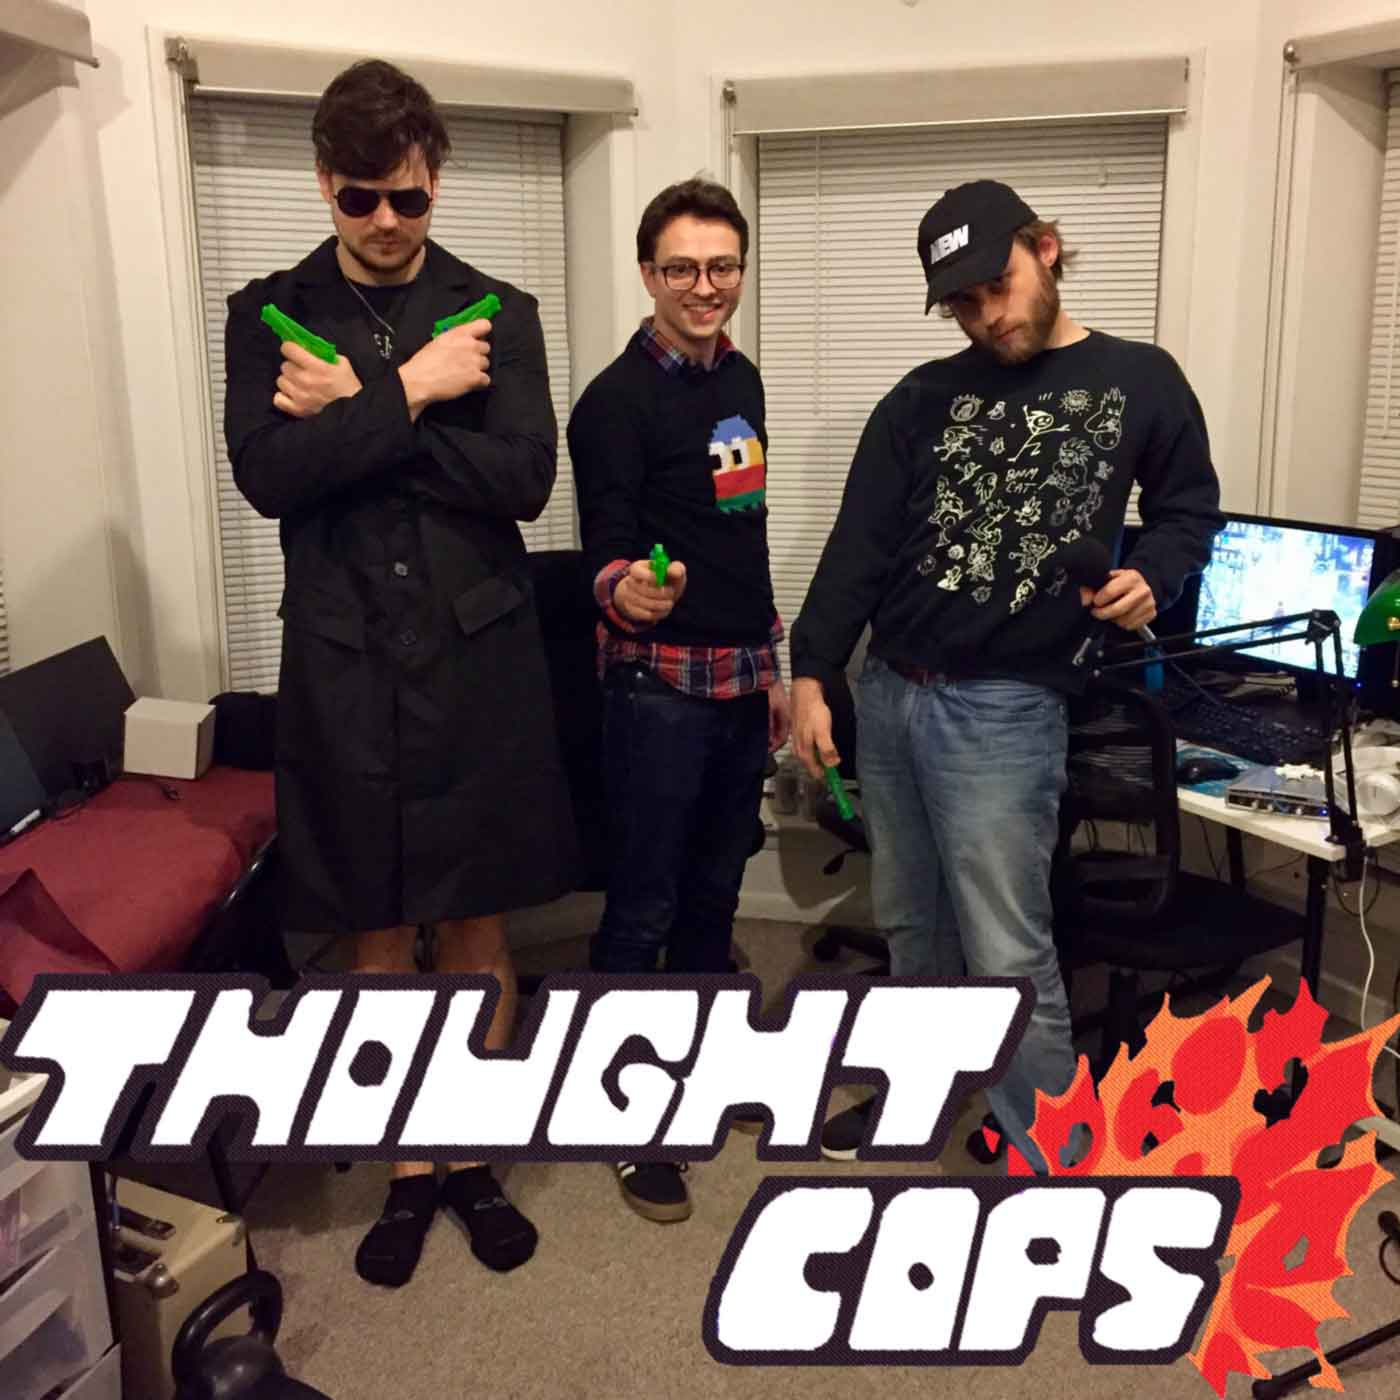 152-thought-cops-andrew-shankland